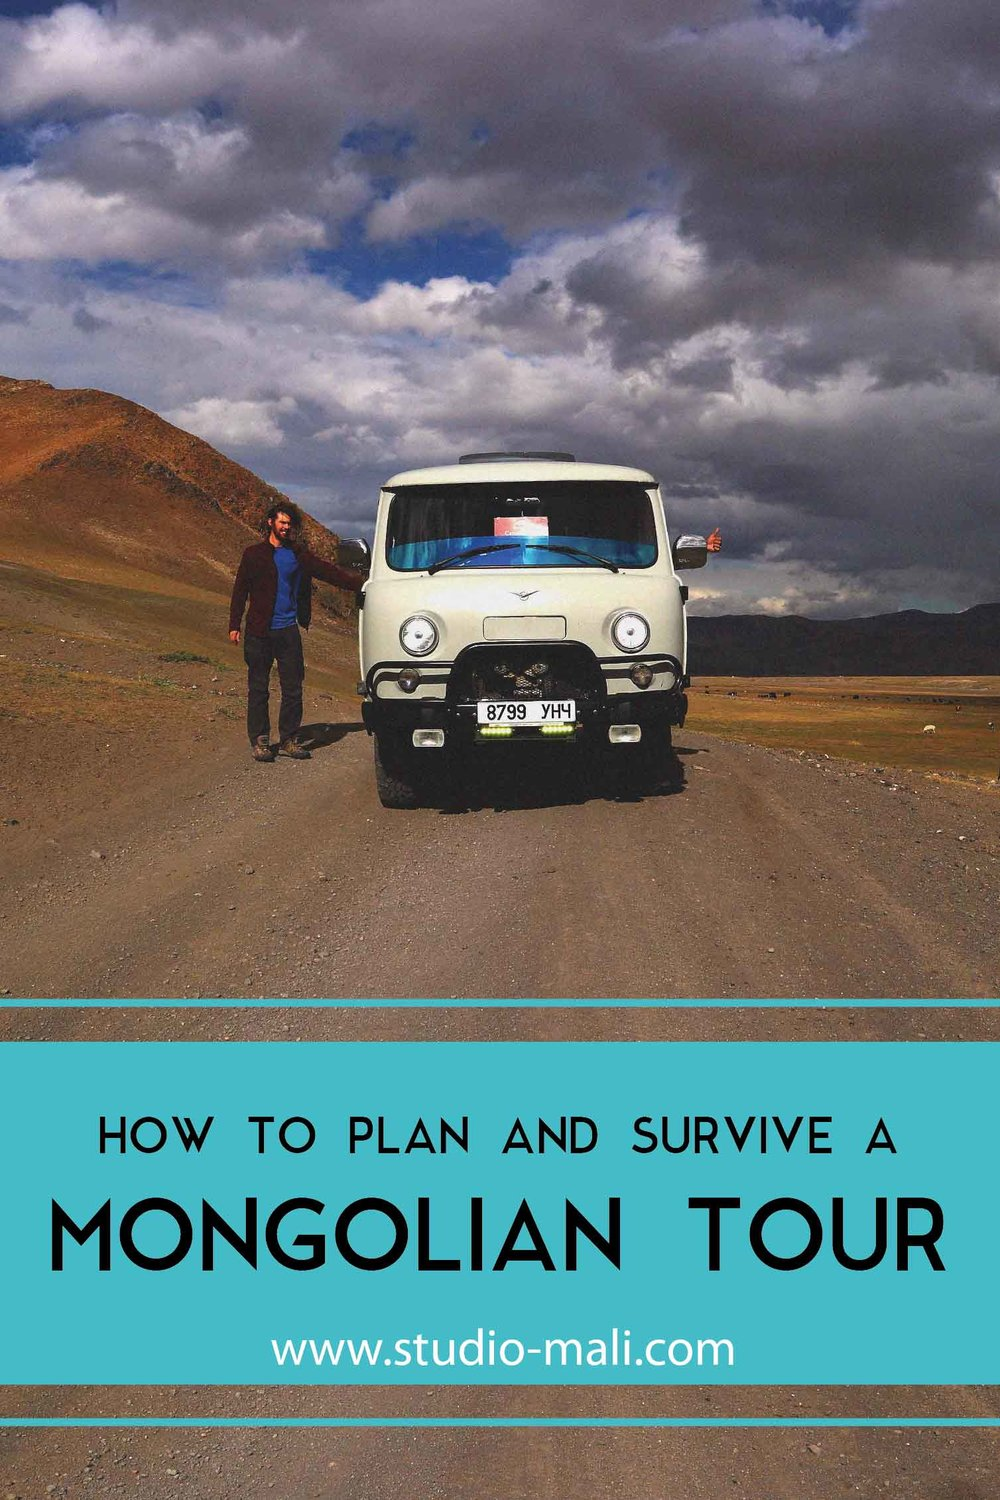 Plan and survive a Mongolian tour